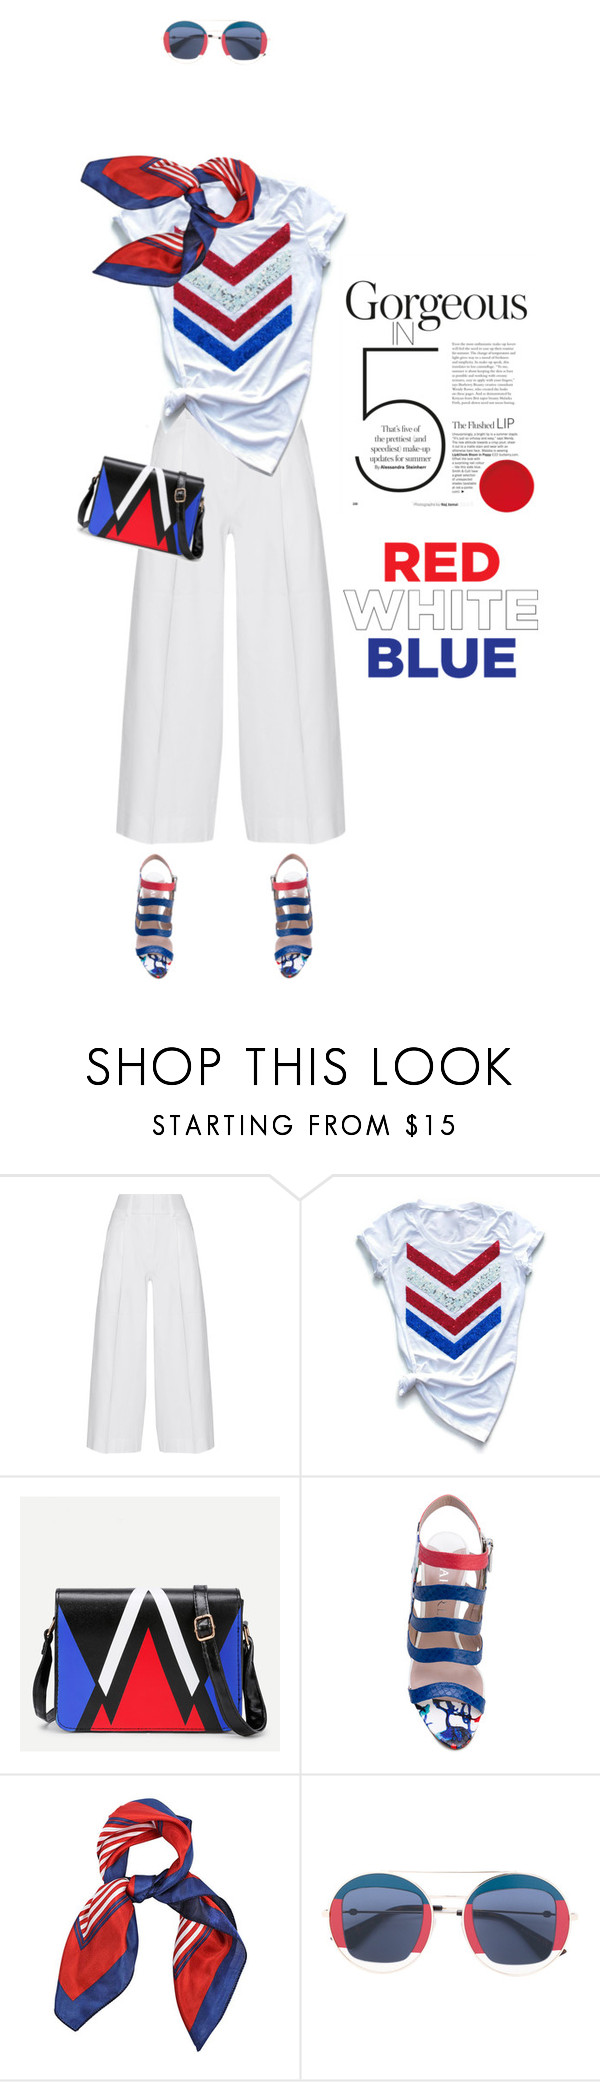 """Gorgeous #730"" by meryflower ❤ liked on Polyvore featuring Diane Von Furstenberg, Aperlaï, Gucci and fourthofjuly"